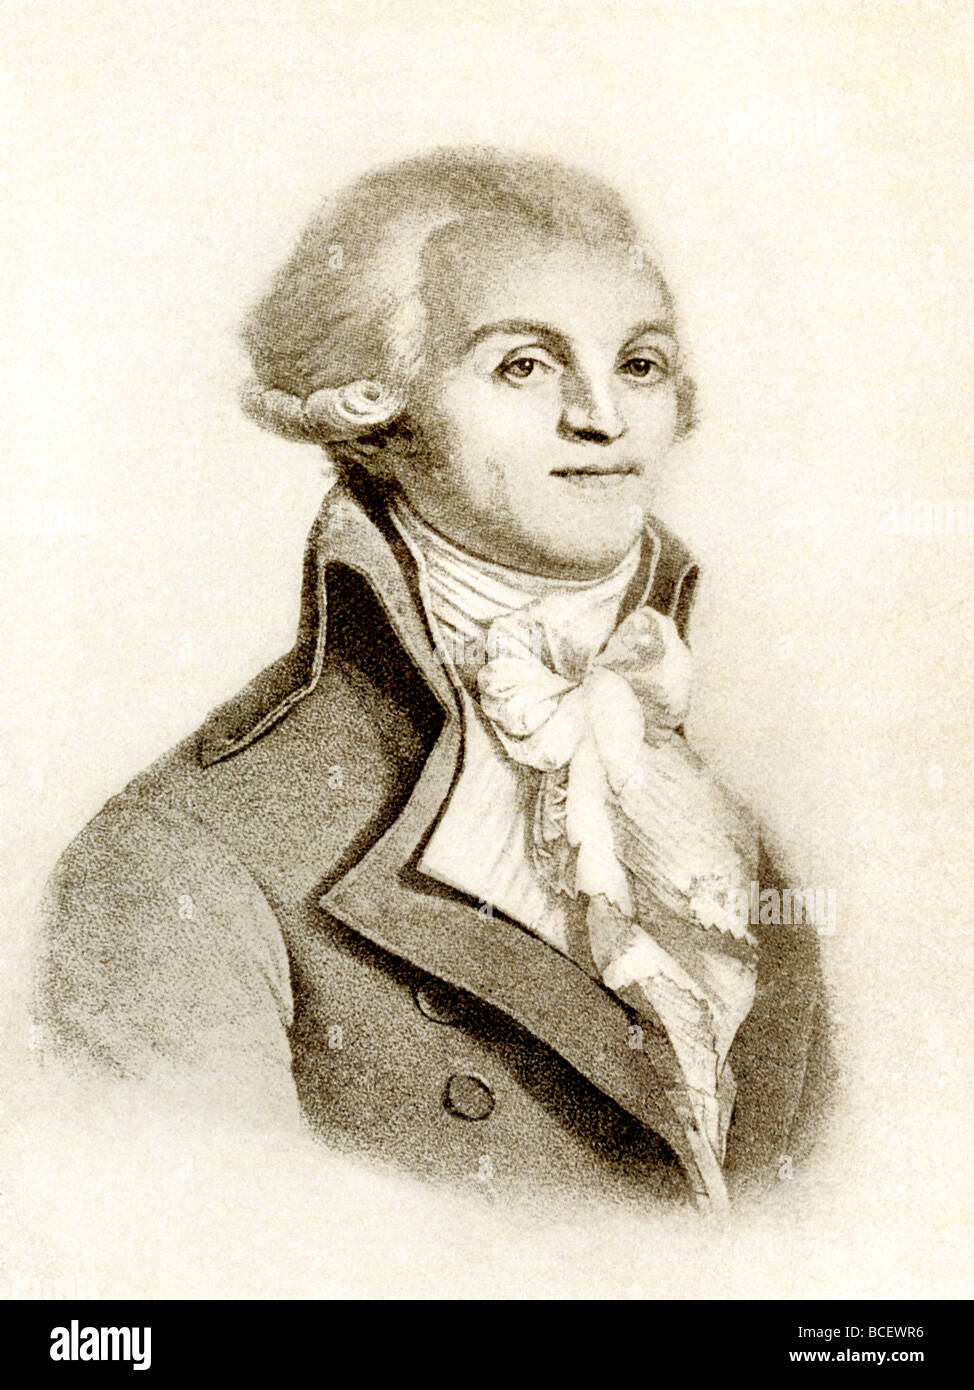 French revolutionary Maximilien Robespierre (1758-1794) was the leader of the Jacobins and key in the Reign of Terror. - Stock Image